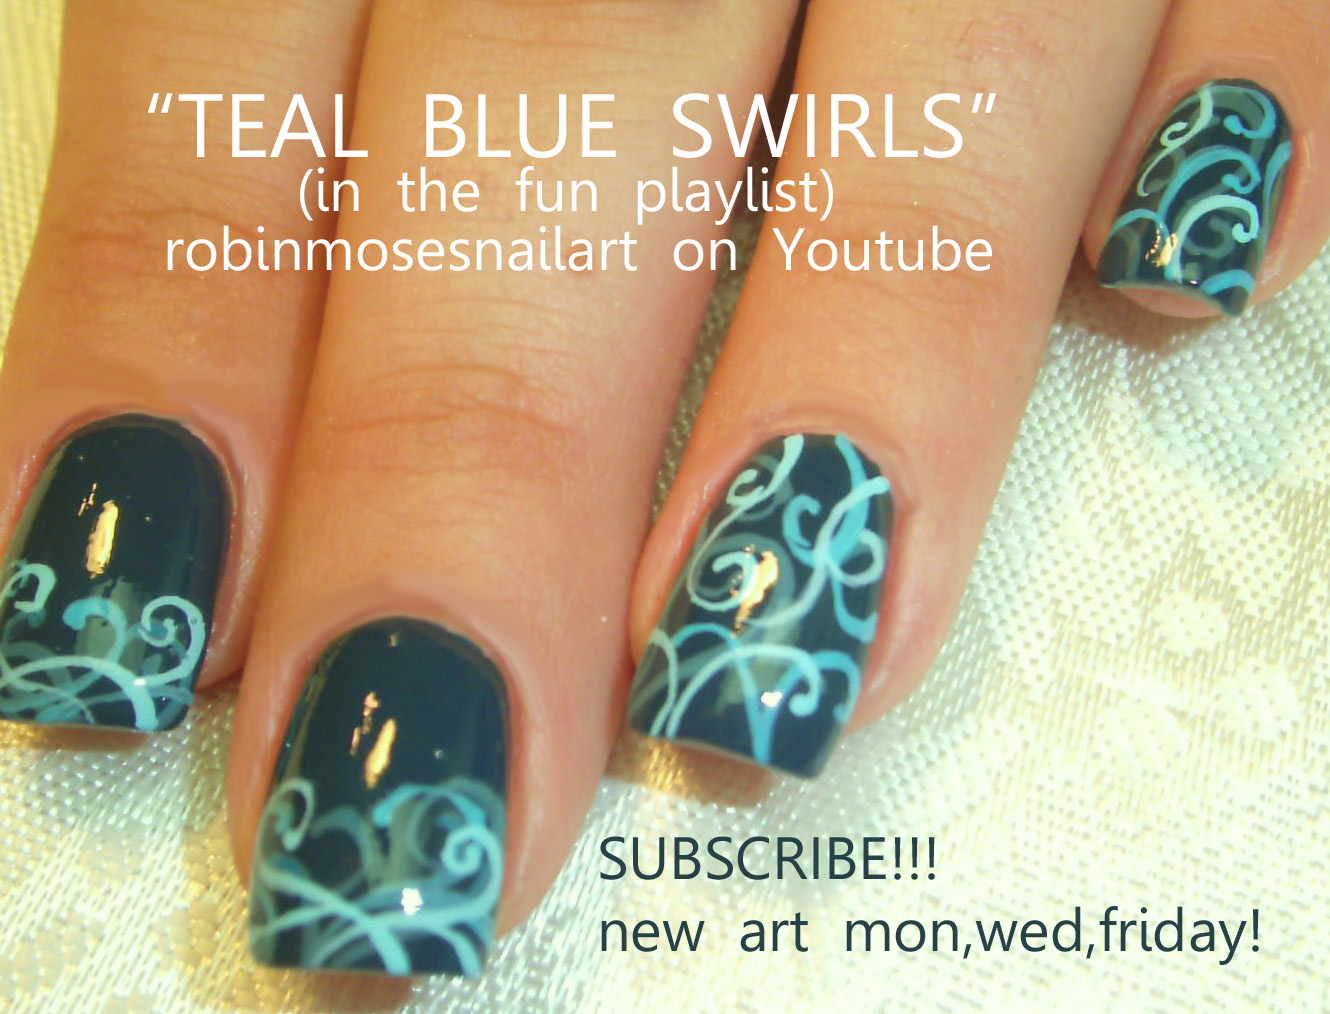 teal filigree nail art, teal ombre nail art, back to school nail art,  chalkboard nail art, homecoming nail art, cute ideas for back to school, ... - Teal Filigree Nail Art, Teal Ombre Nail Art, Back To School Nail